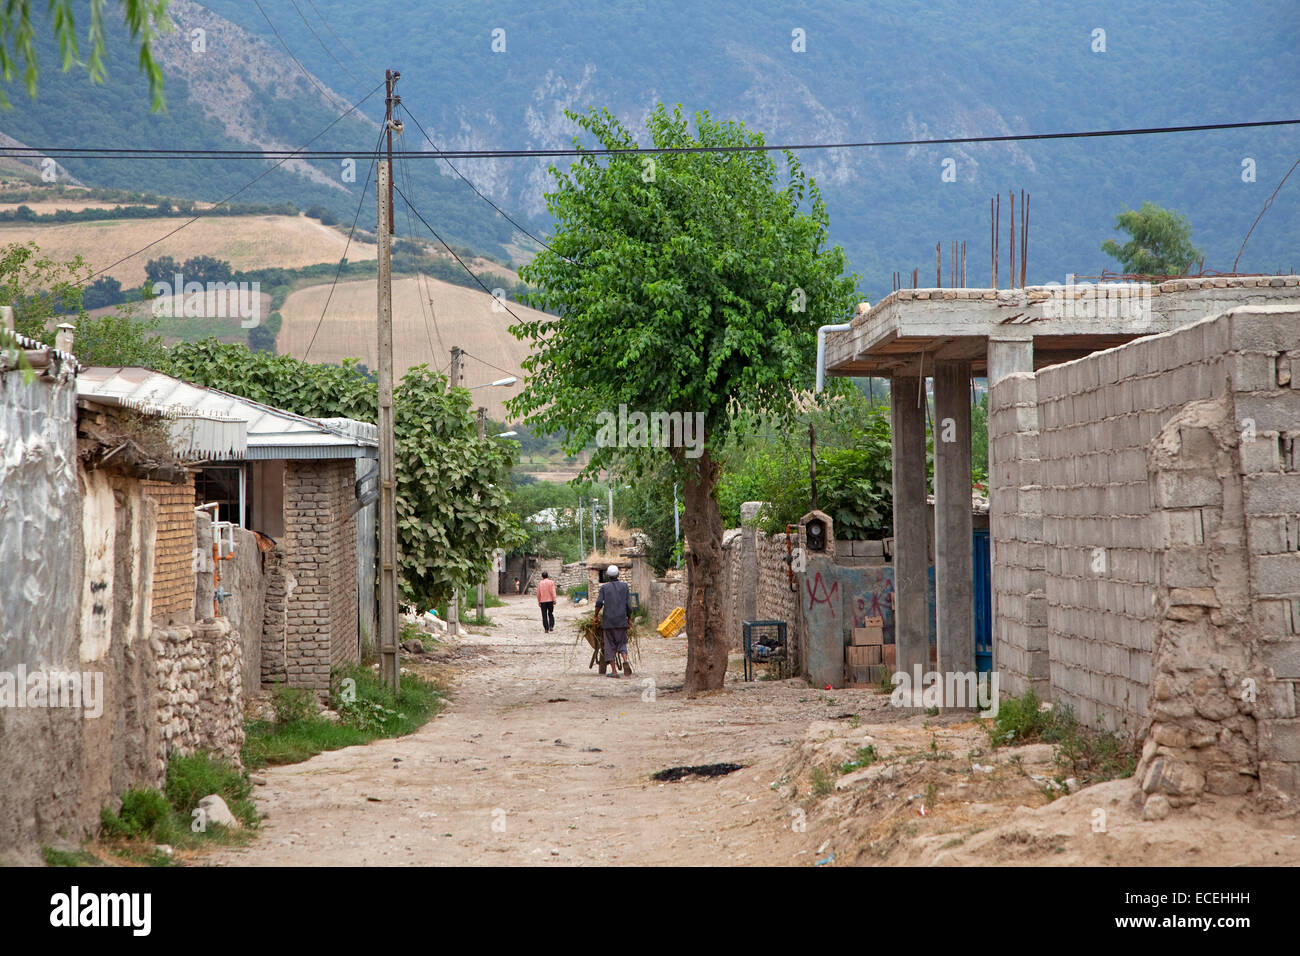 Houses along alley in a small village in rural Iran - Stock Image